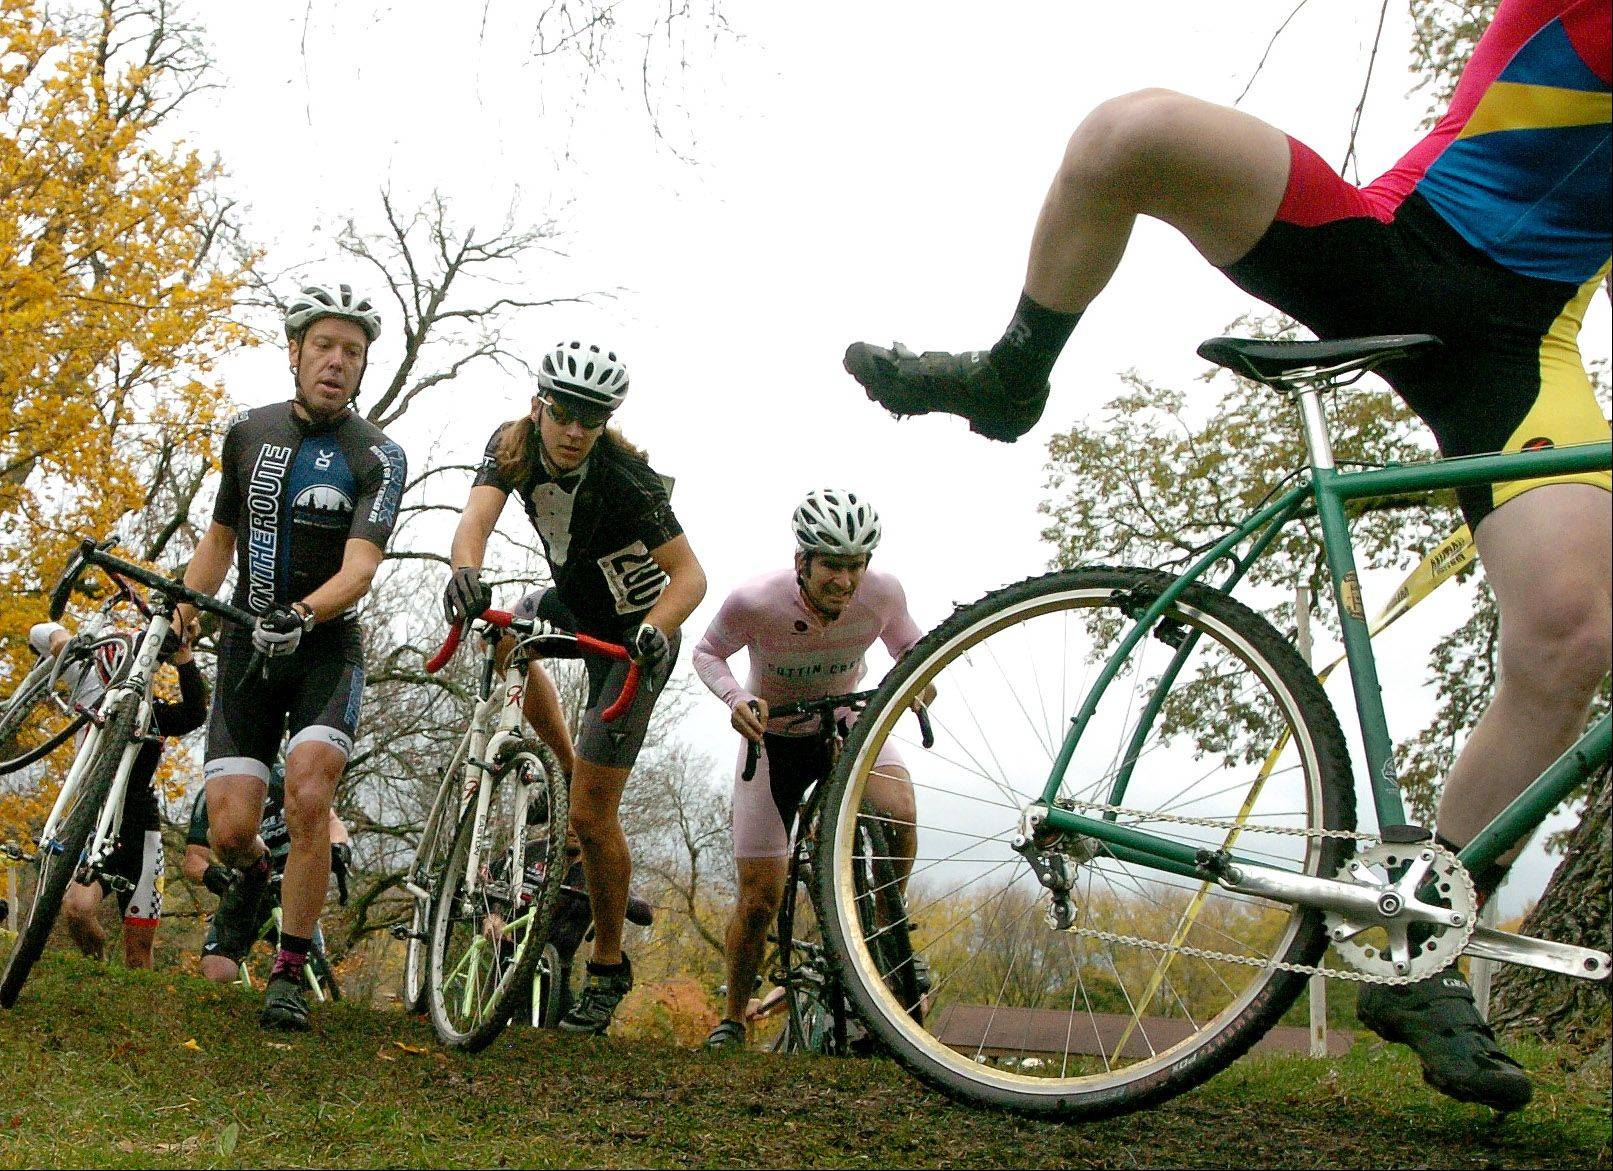 Riders make their way up a hill during the single speed bike race at the Carpentersville Cyclocross bicycle event Sunday during Oktoberfest.